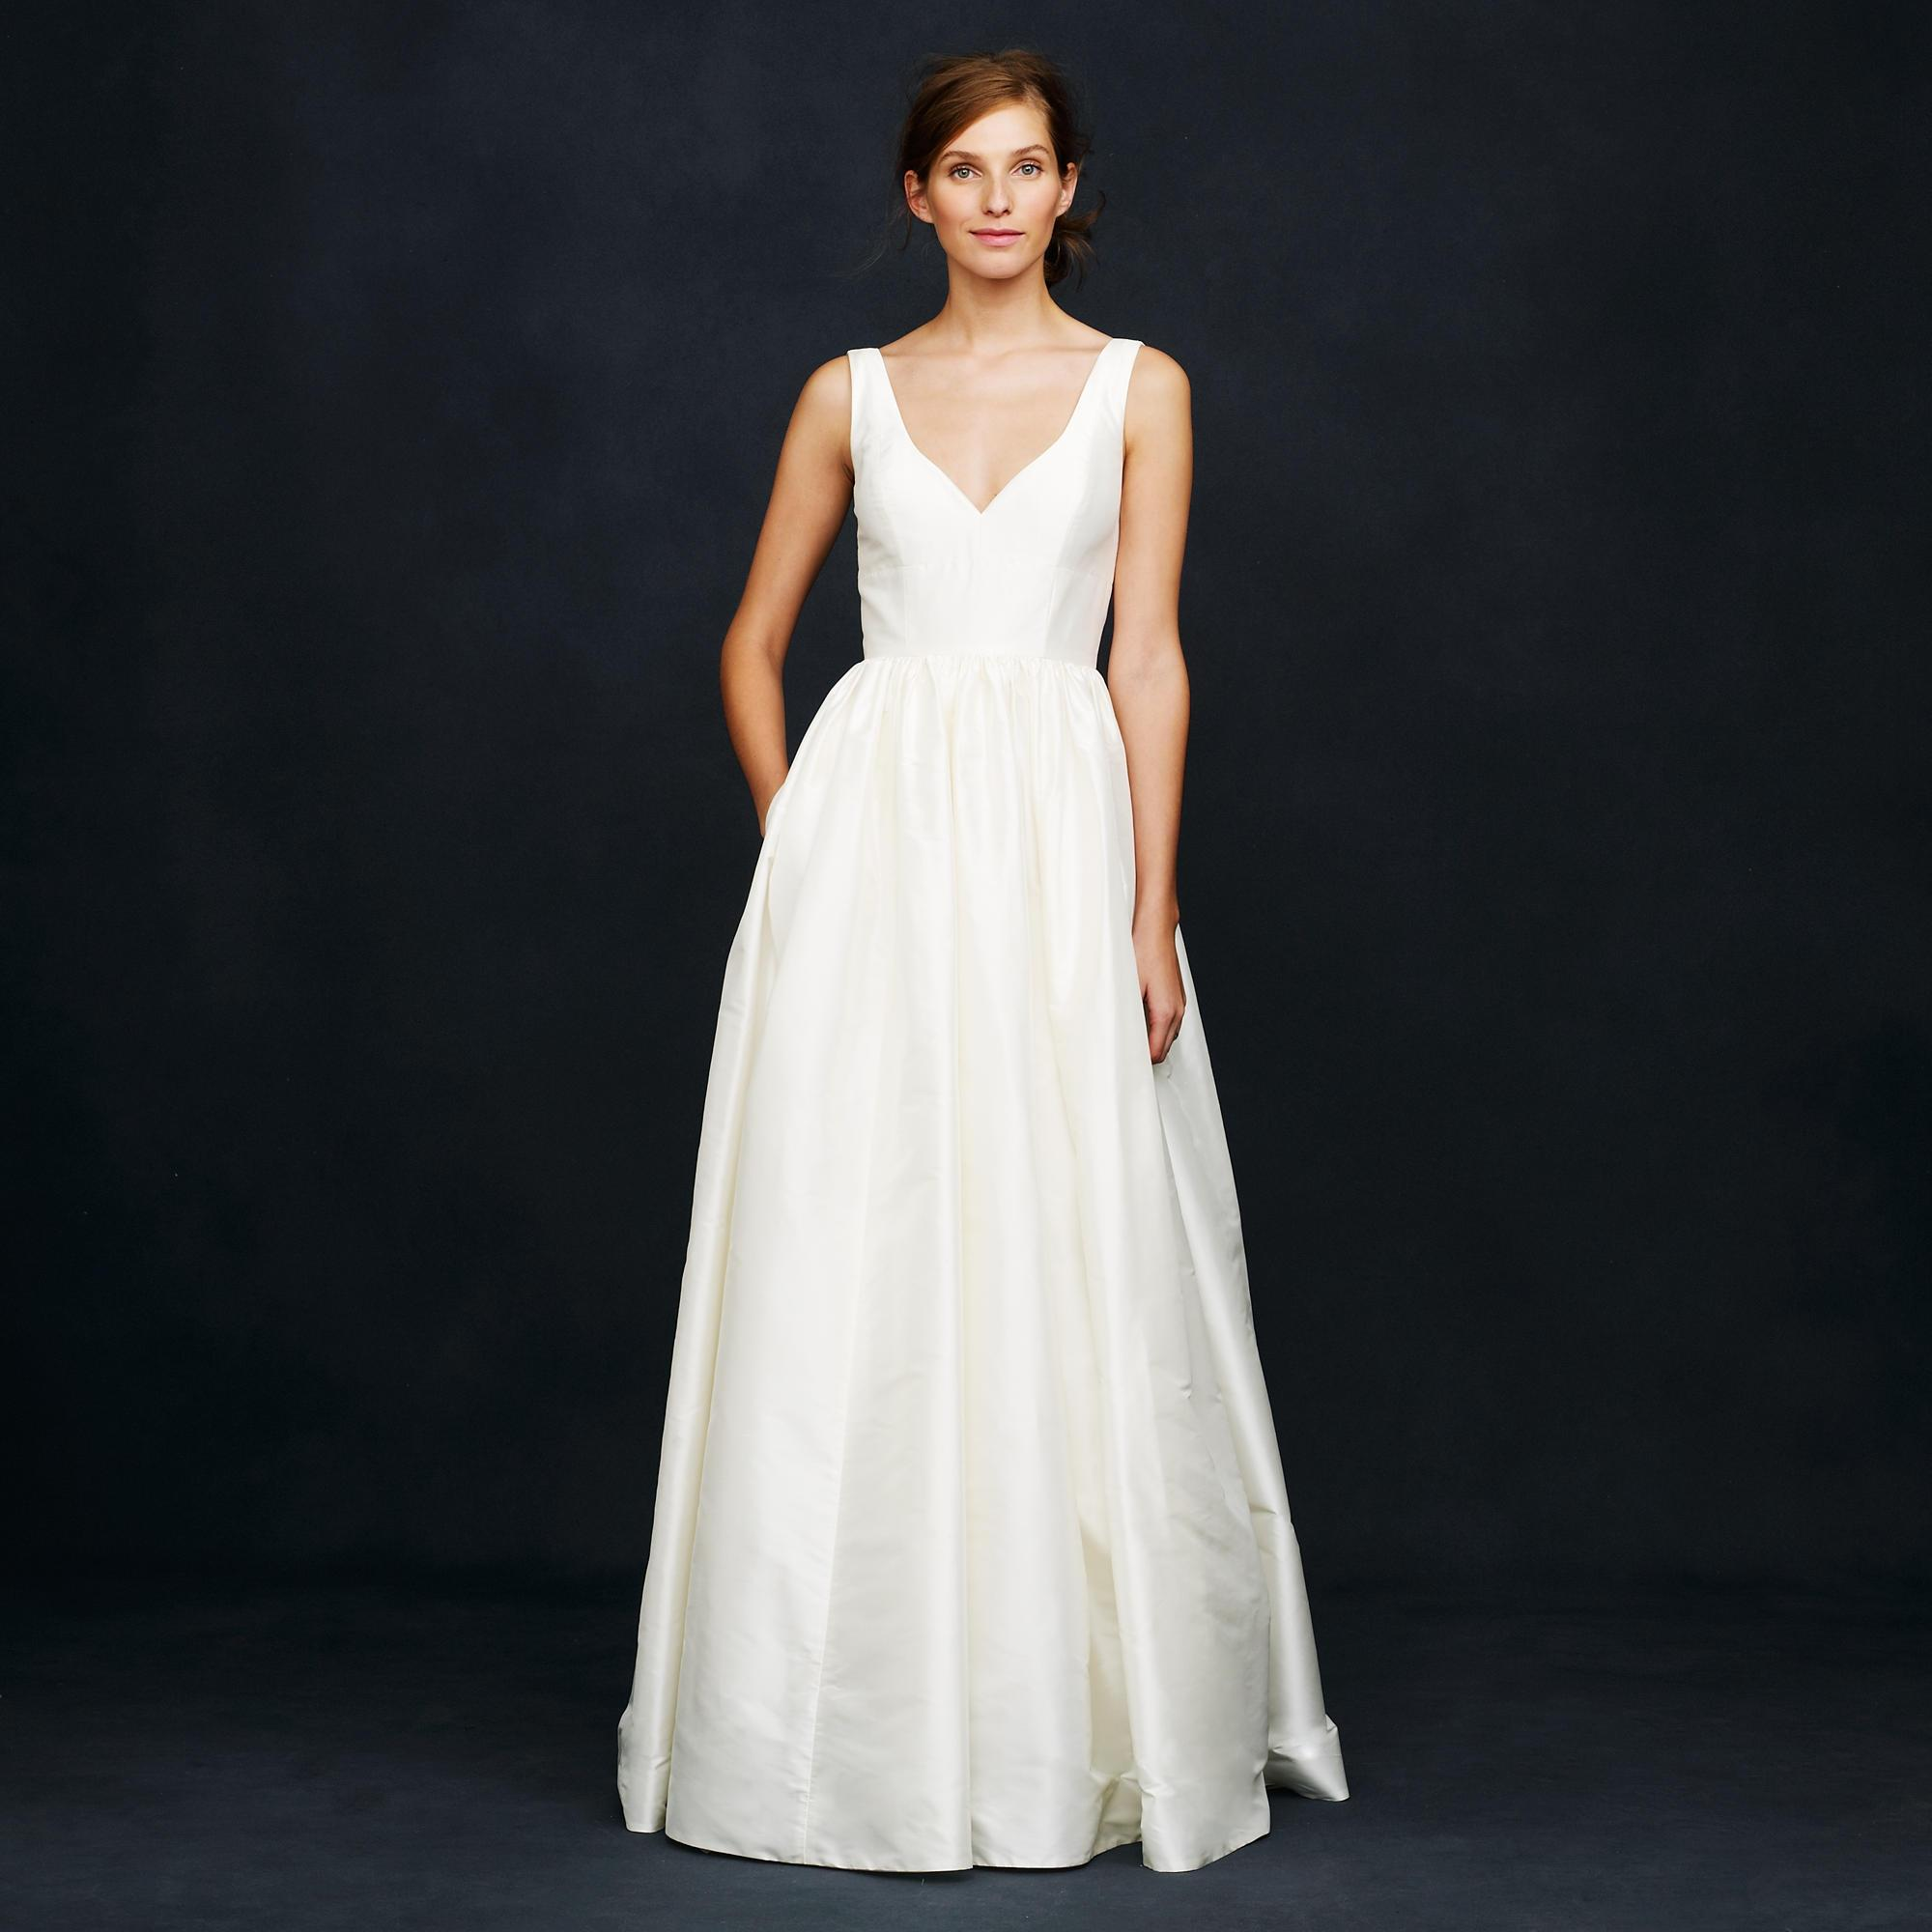 Superb J.Crew Ivory Silk Karlie Wedding Dress Size 0 (XS) ...